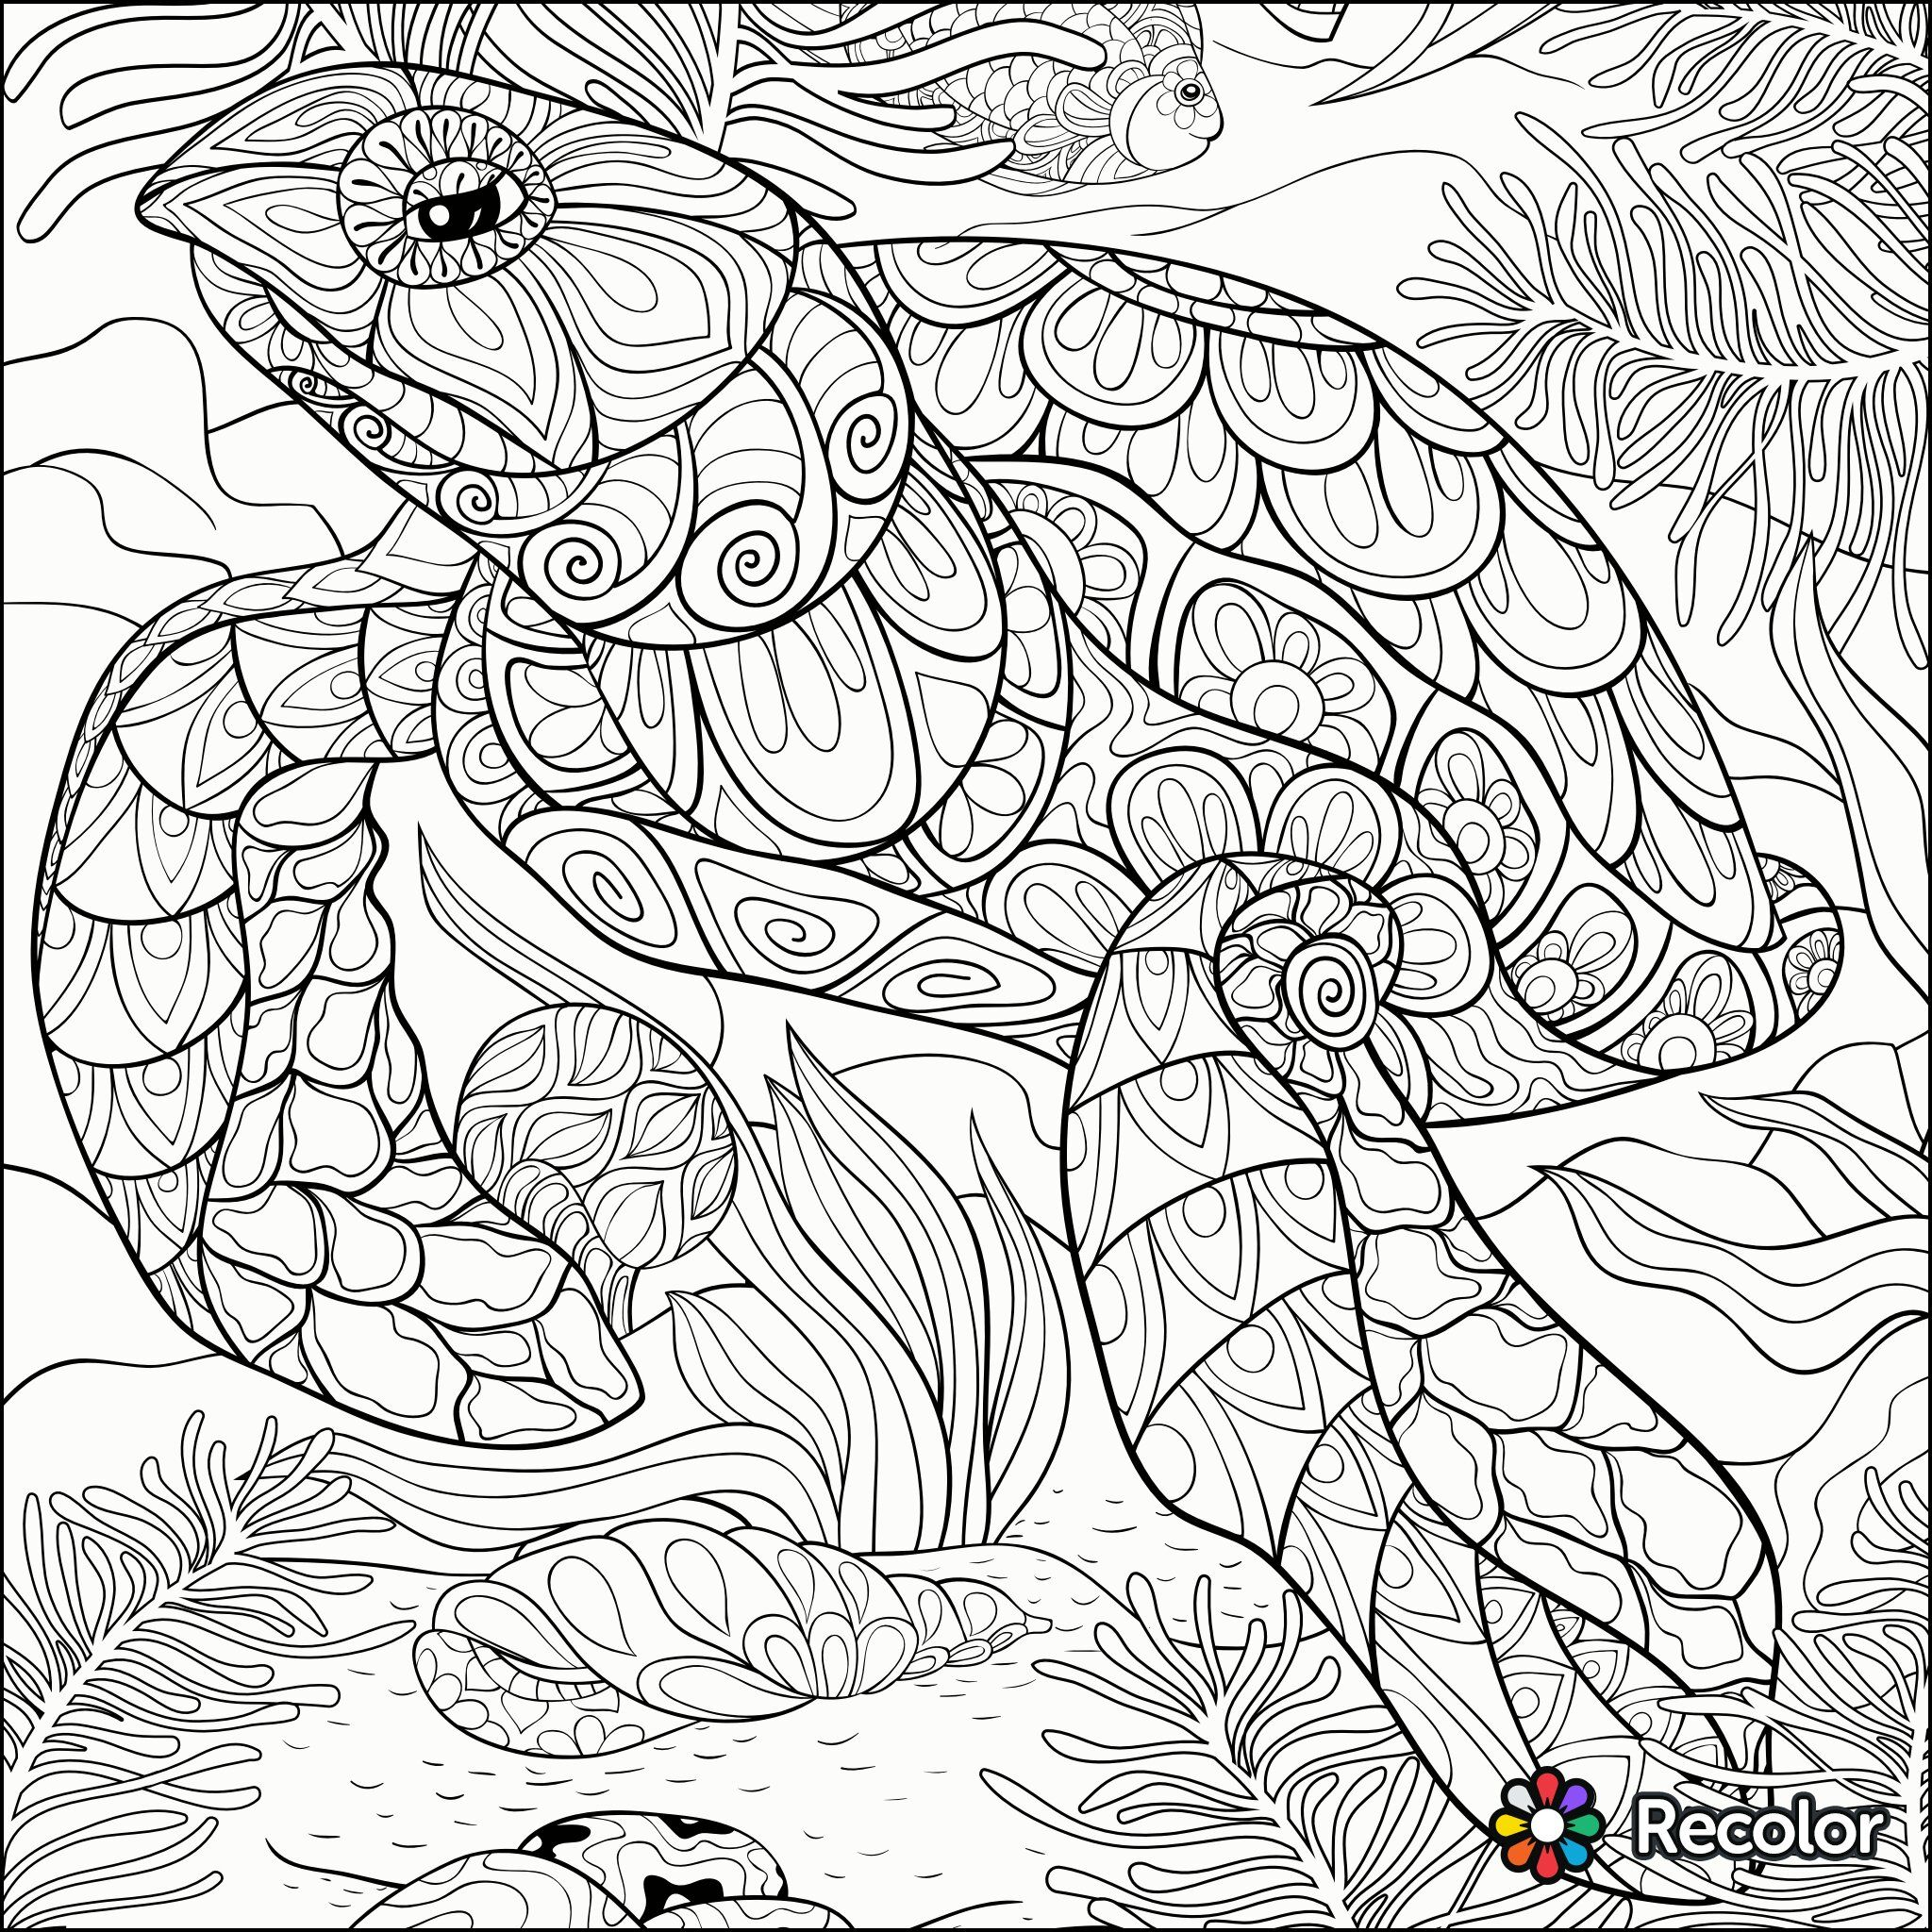 Turtle Coloring Page Recolor App Turtle Coloring Pages Animal Coloring Pages Coloring Books